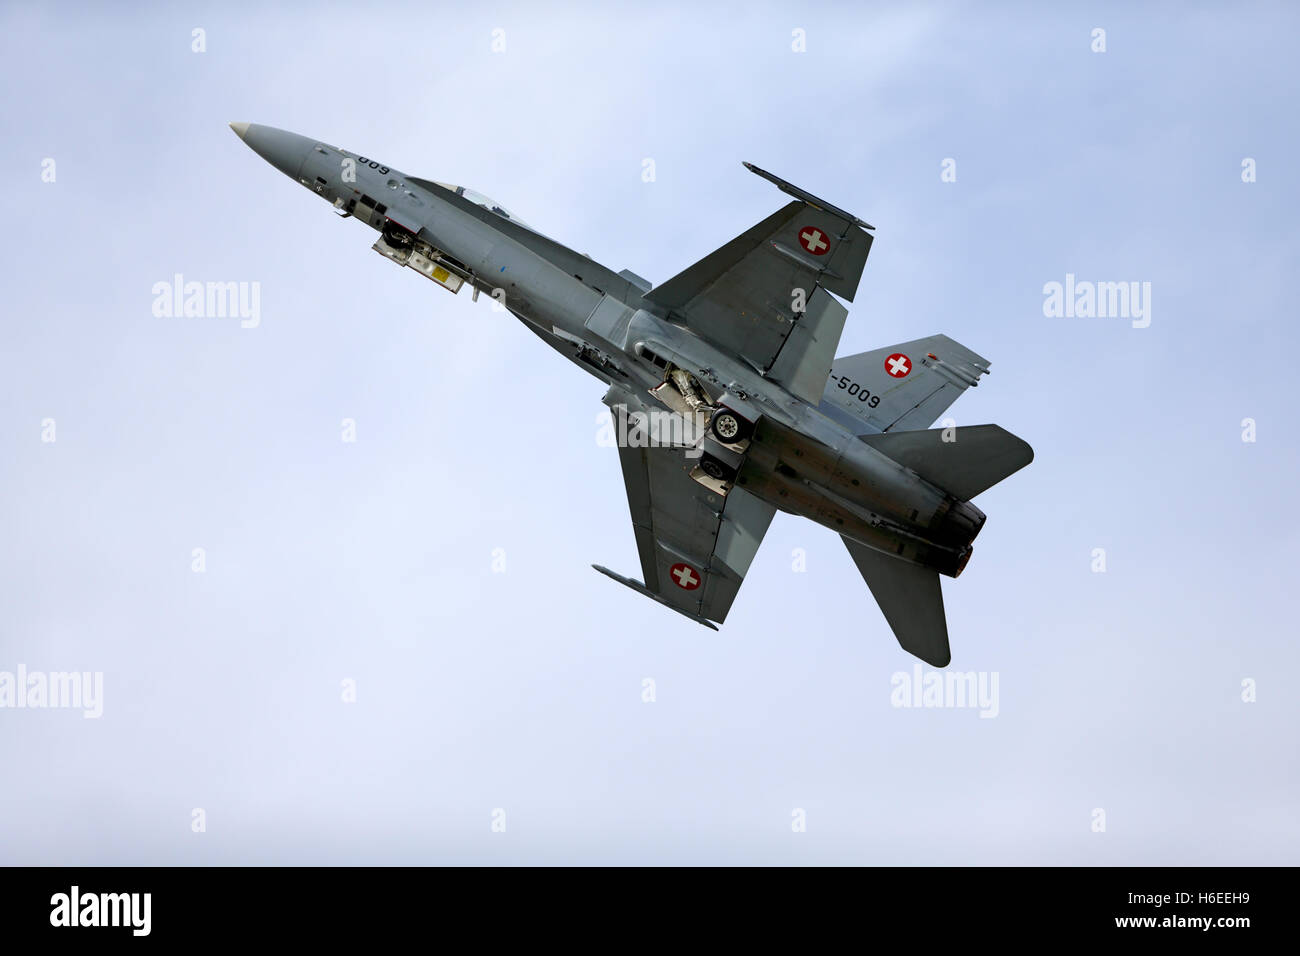 Swiss Air Force McDonnell Douglas F/A-18C Hornet, J-5009 (cn 1343/SFC009), takes off at the Royal International - Stock Image